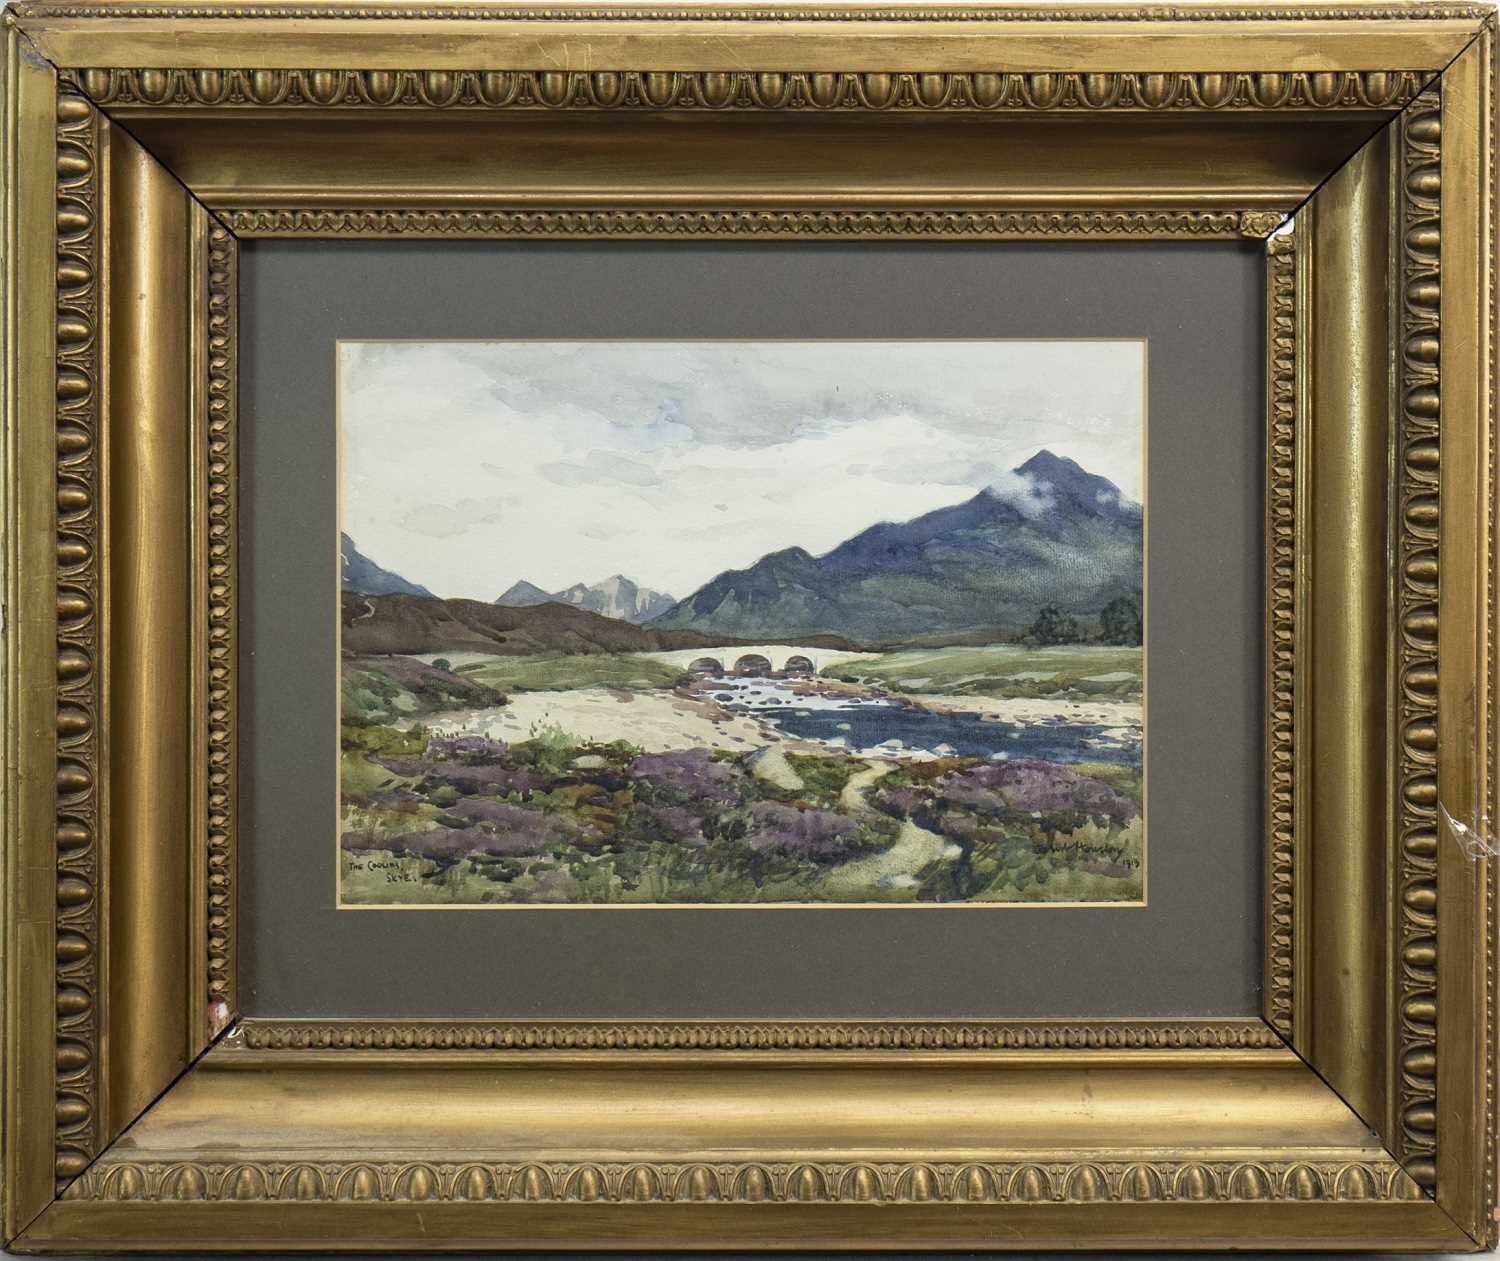 Lot 428-THE CUILLINS, SKYE, A WATERCOLOUR BY ROBERT HOUSON